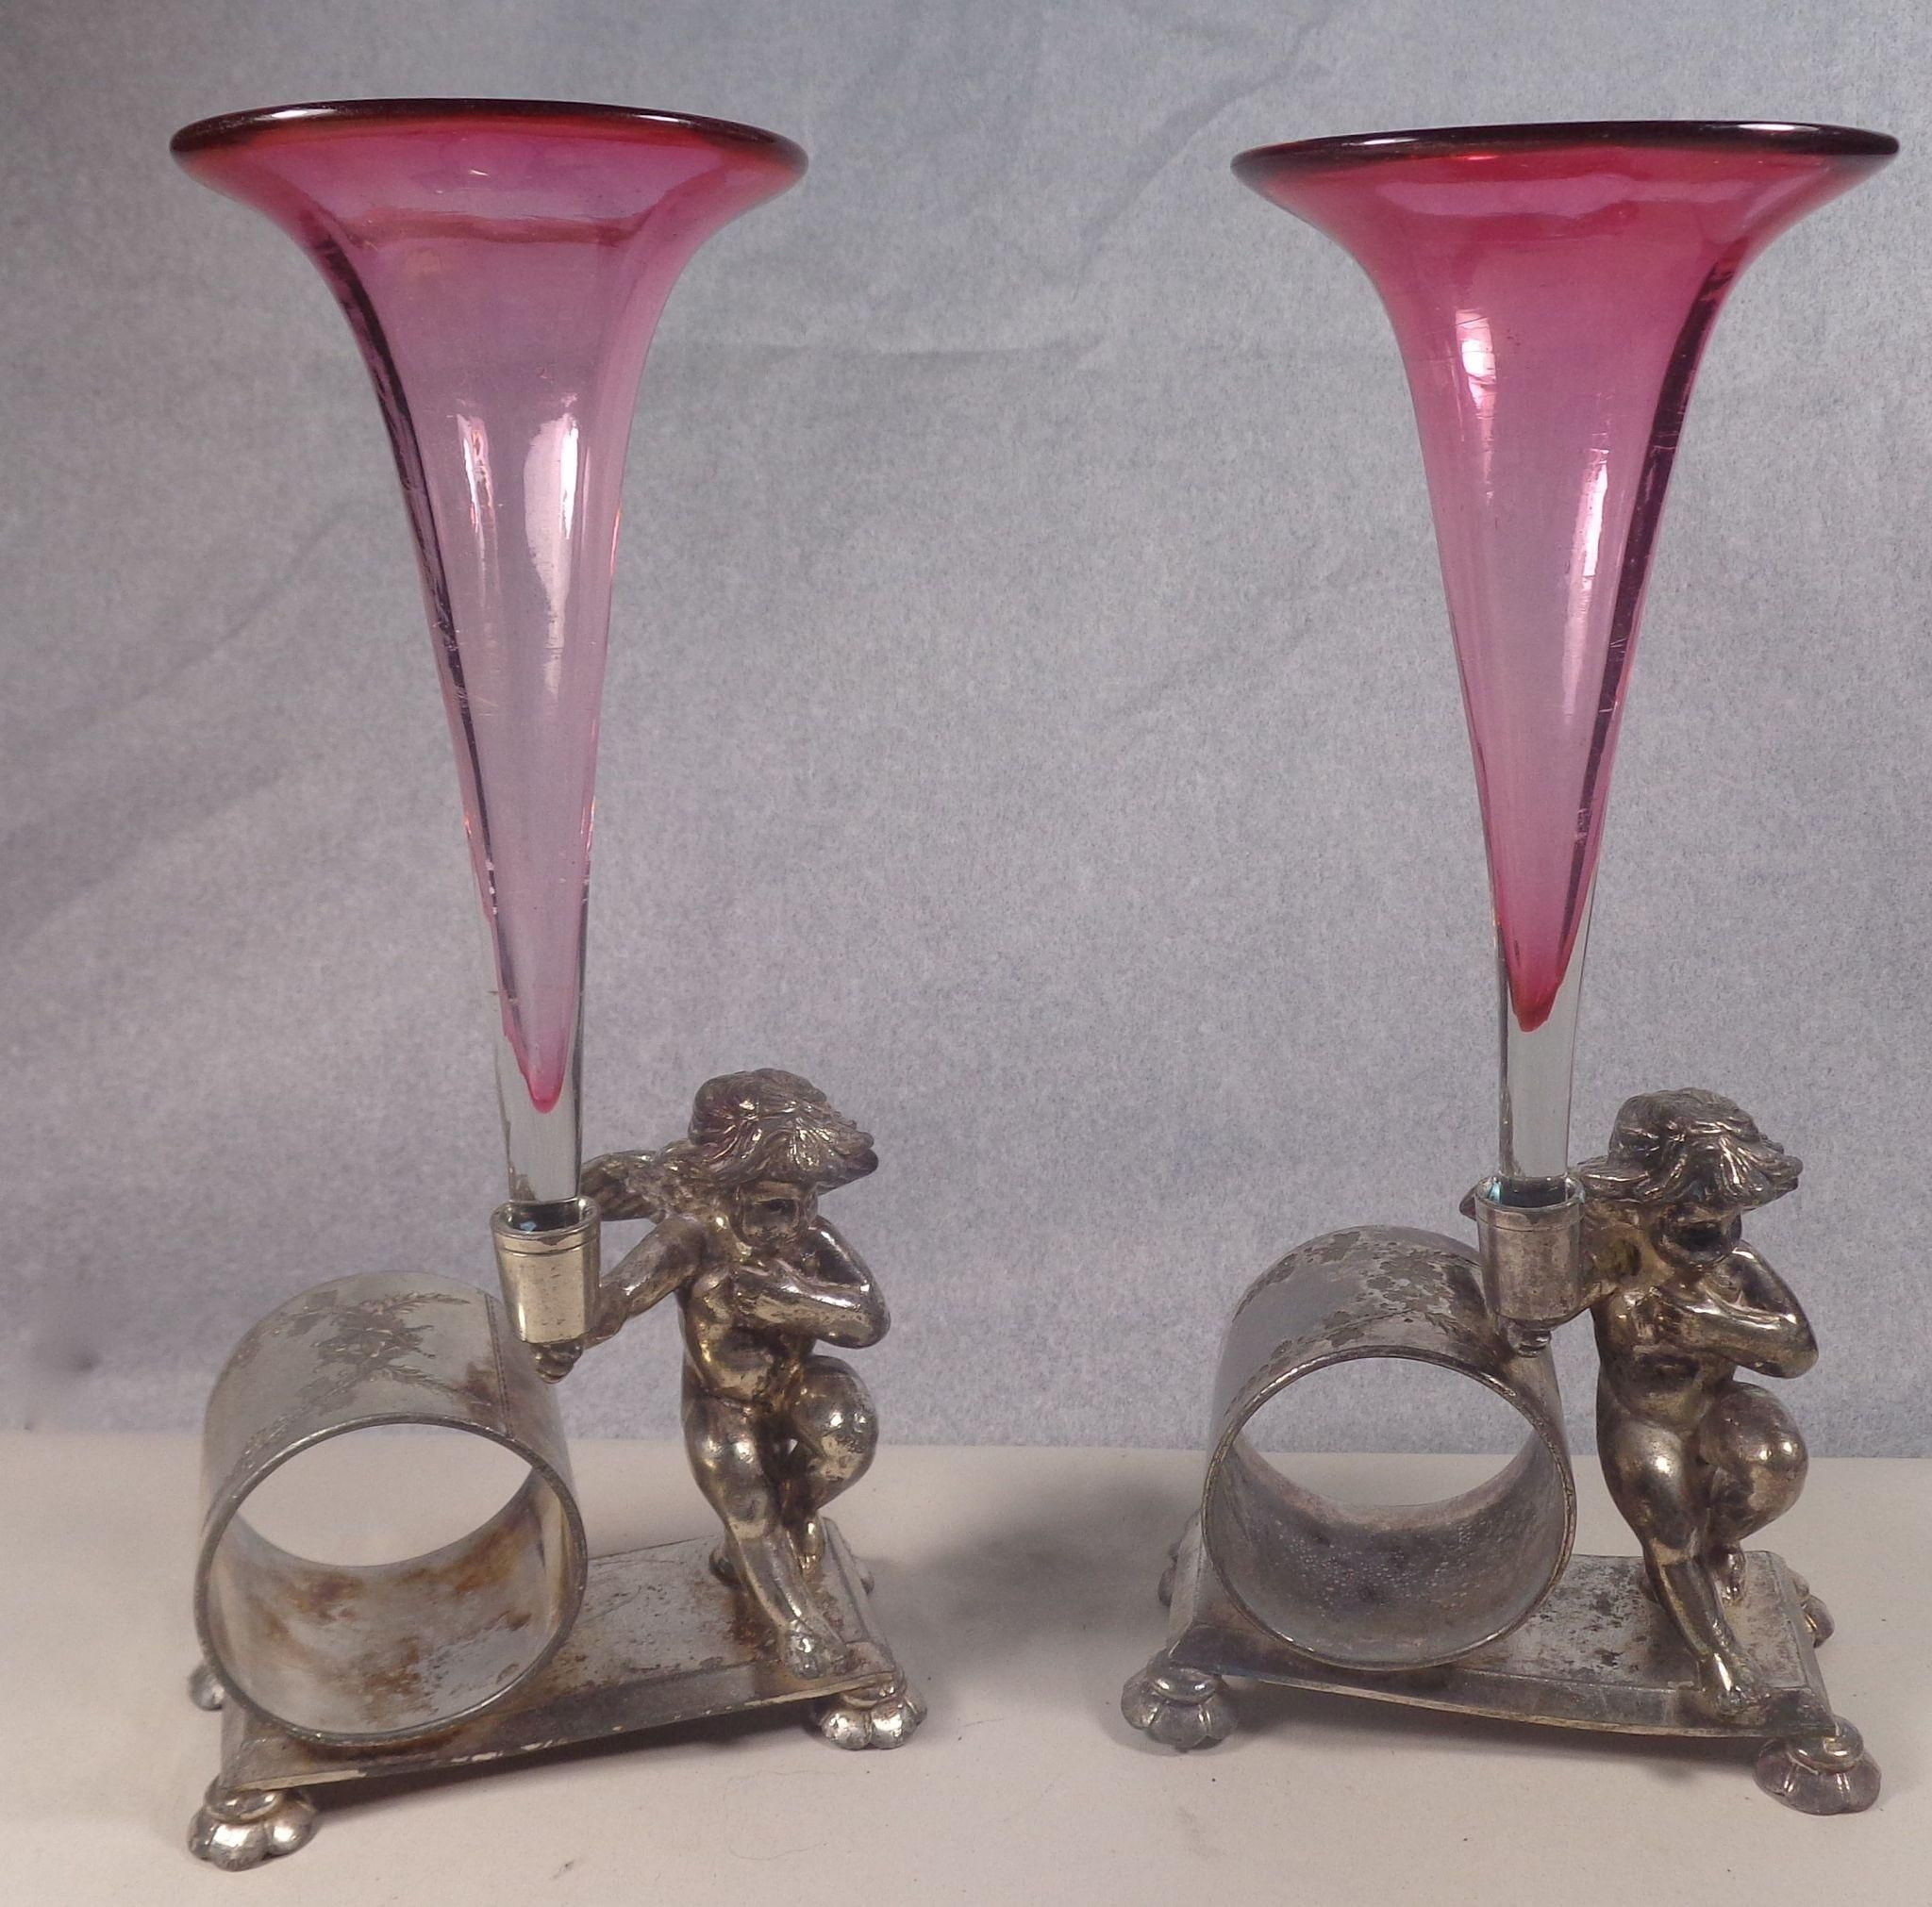 3 glass vases of cranberry glass vases with meriden napkin holder beautiful art for cranberry glass vases with meriden napkin holder